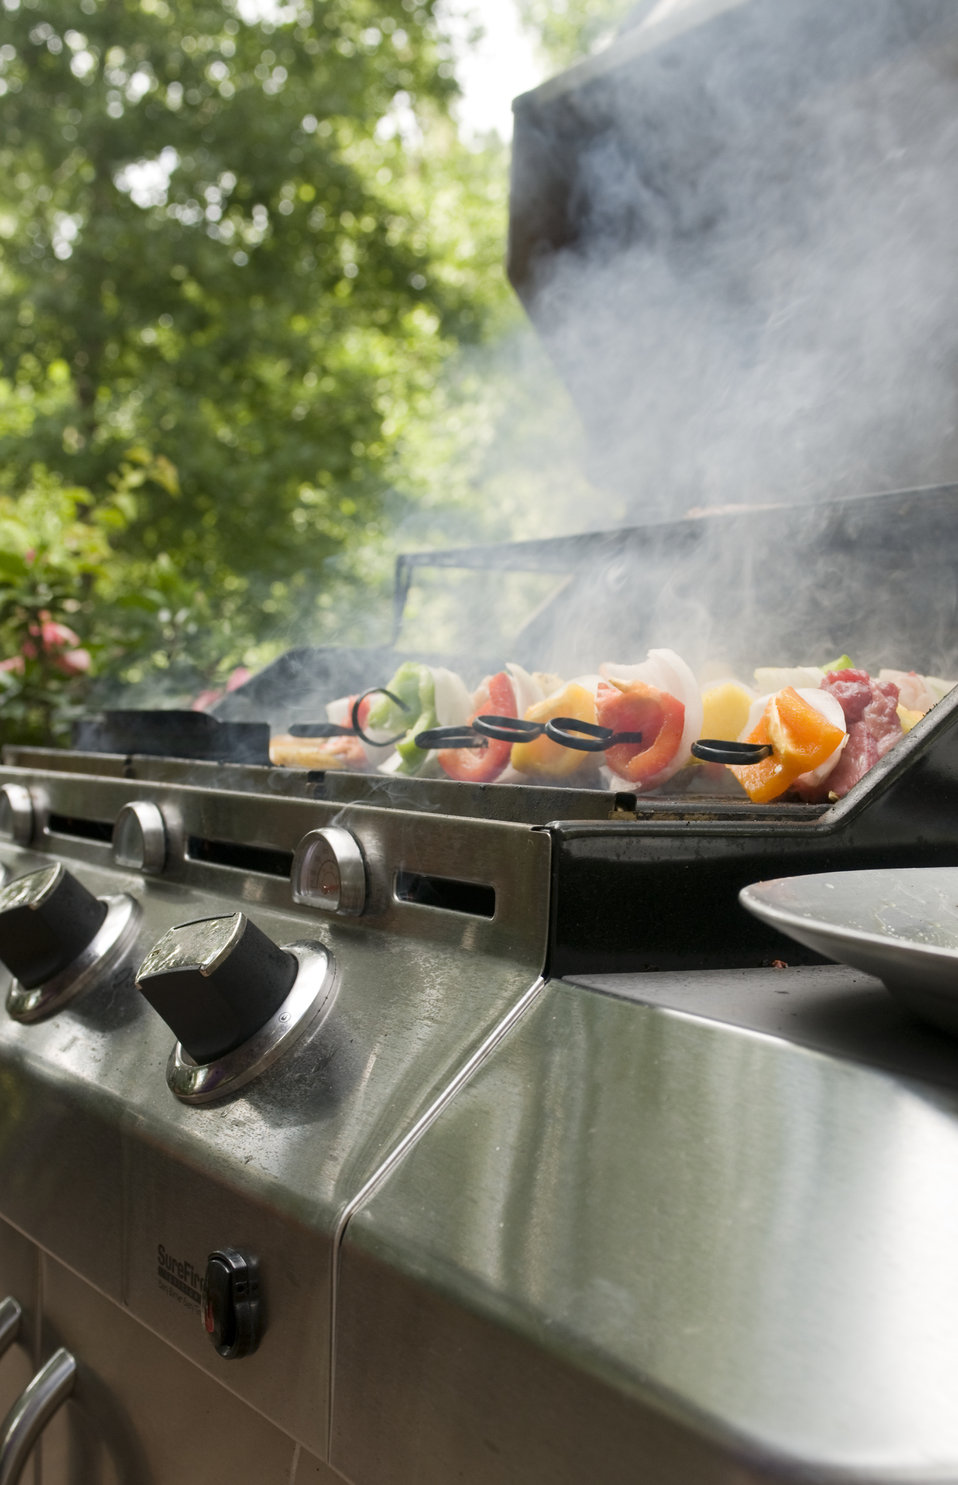 This image depicts four freshly-prepared kabobs, which had been set atop an outdoor stainless steel gas grill, and were cooking, as an entic